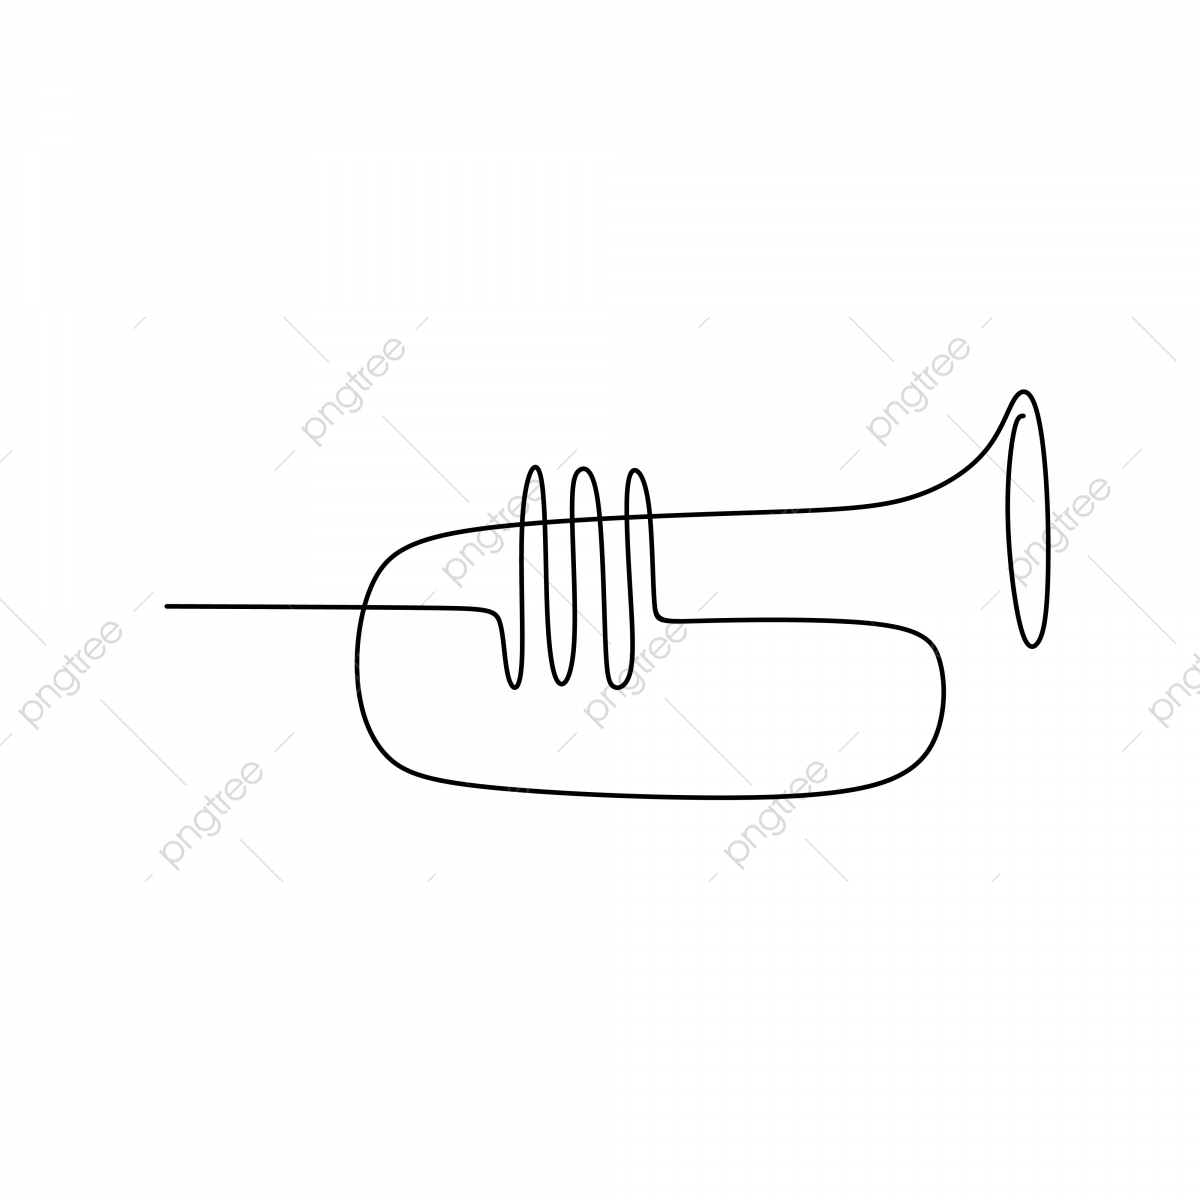 Picture Of A Continuous Line Of Trumpet Musical Instruments, Song